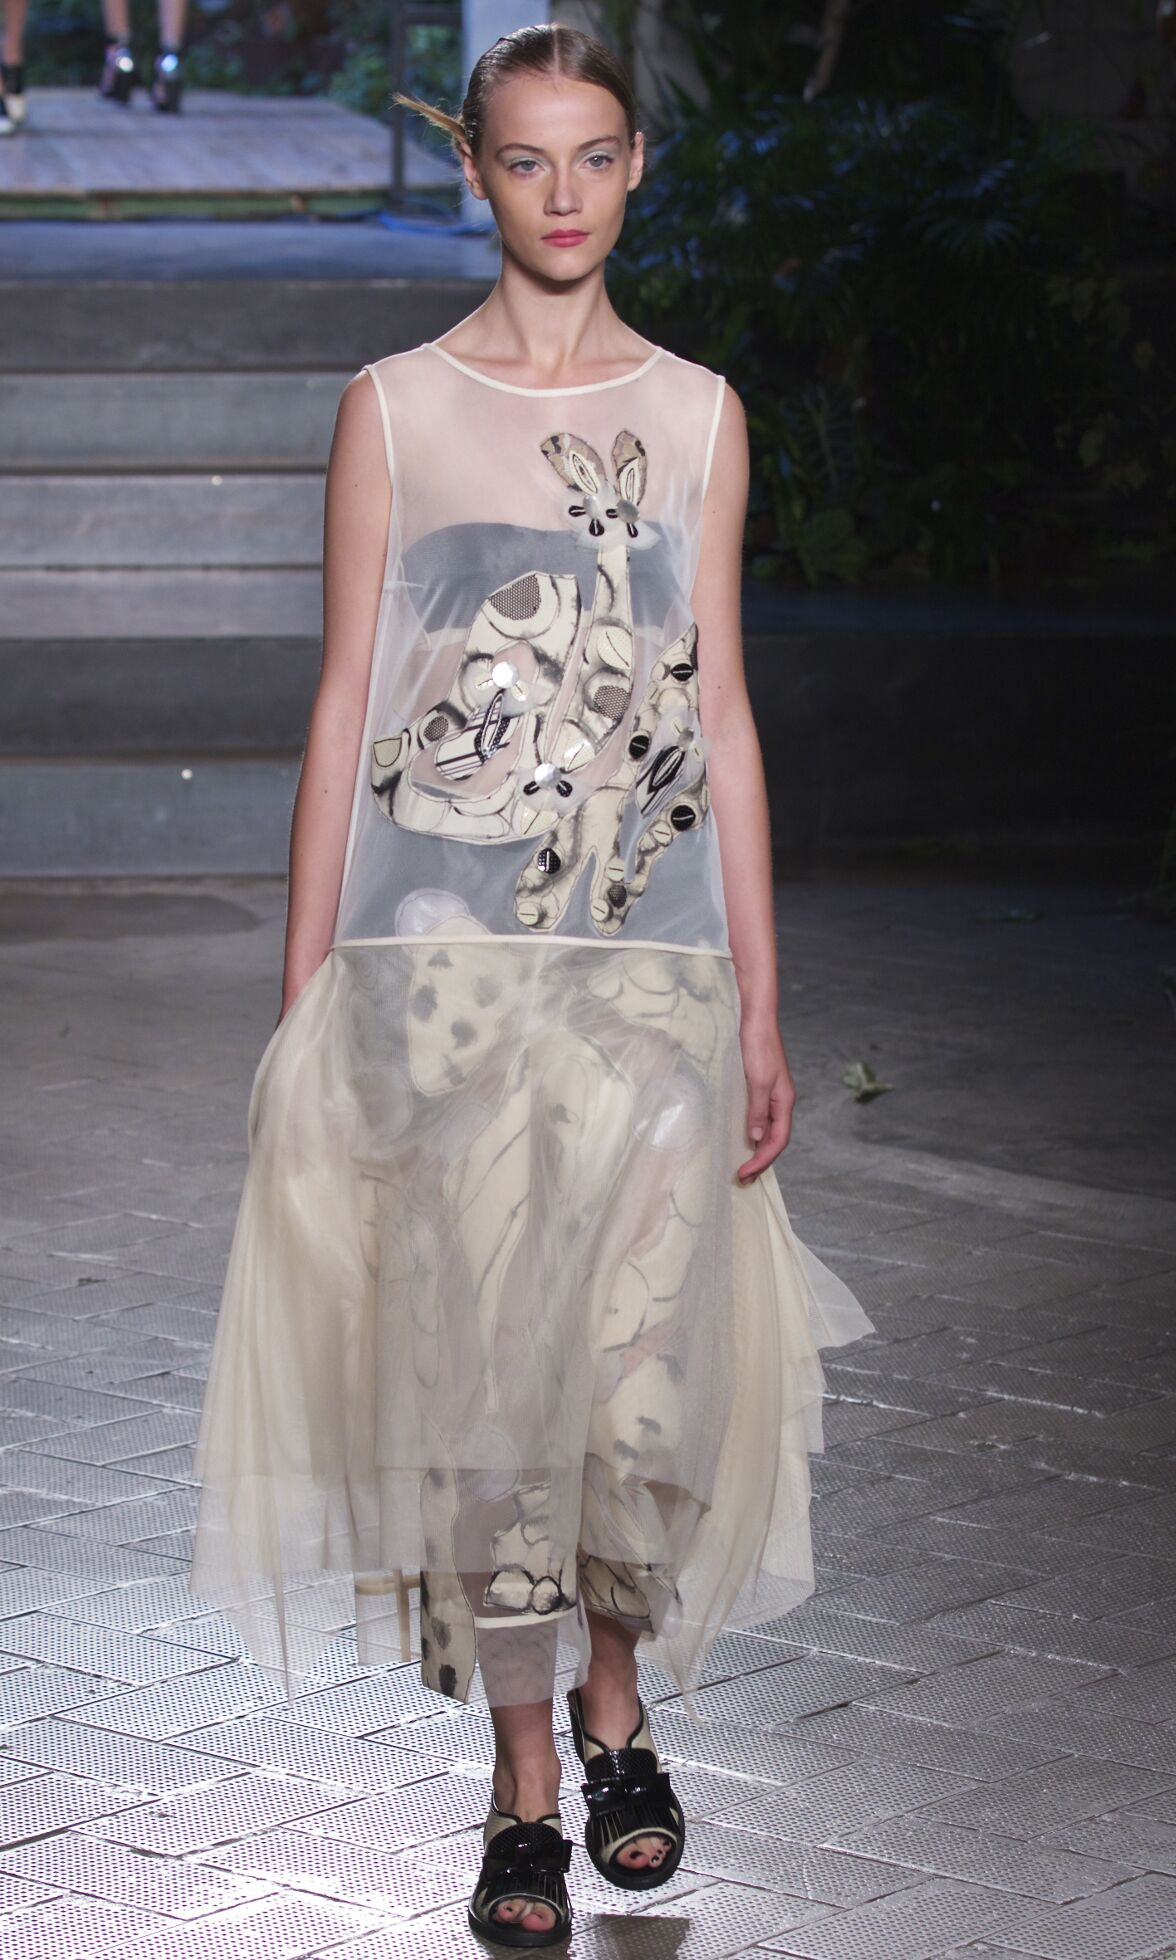 Antonio Marras Summer 2014 Catwalk